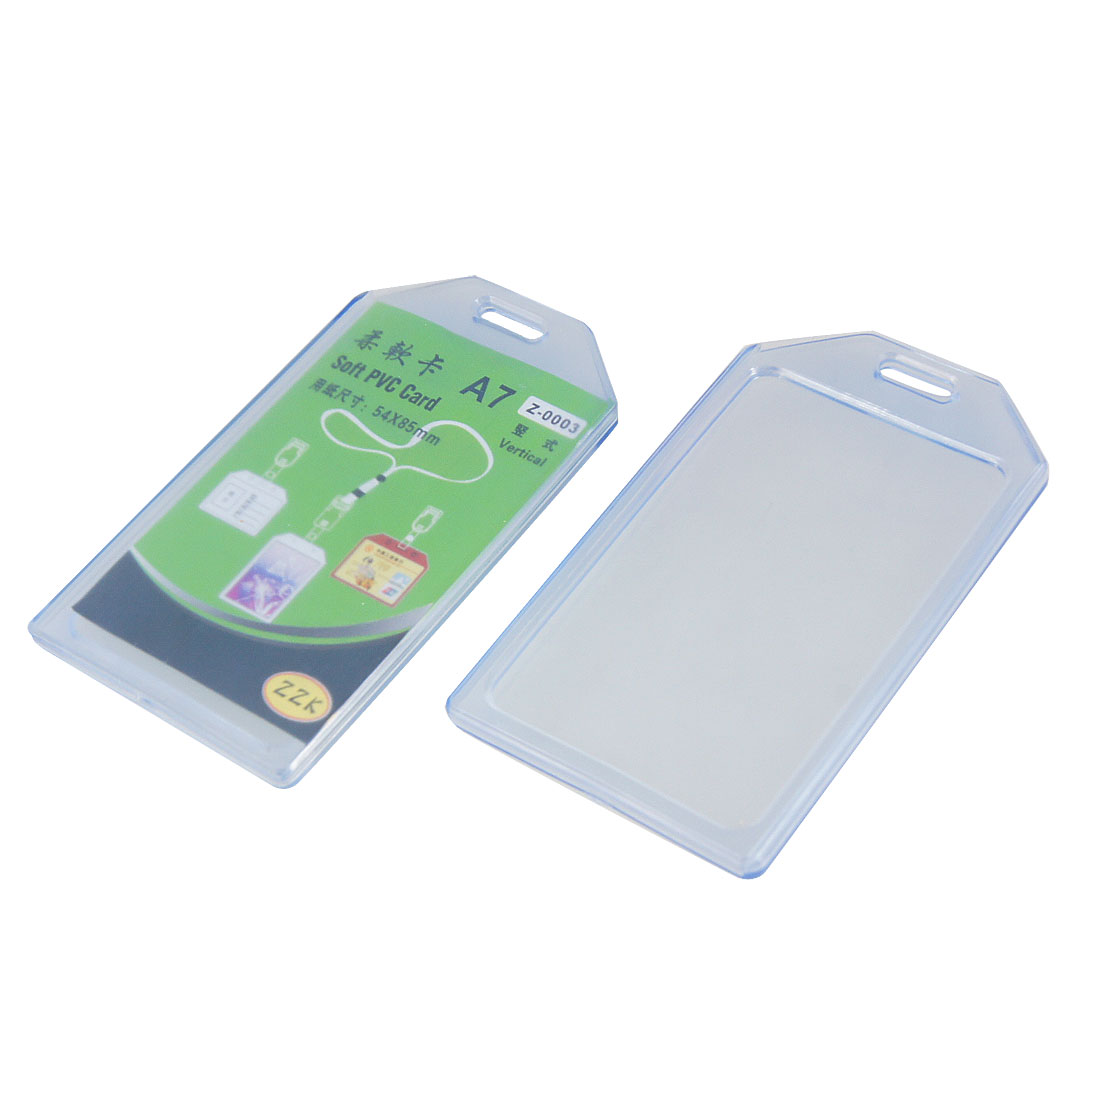 Clear Blue Soft Plastic Business ID Badge Card Vertical Holder 2 Pcs